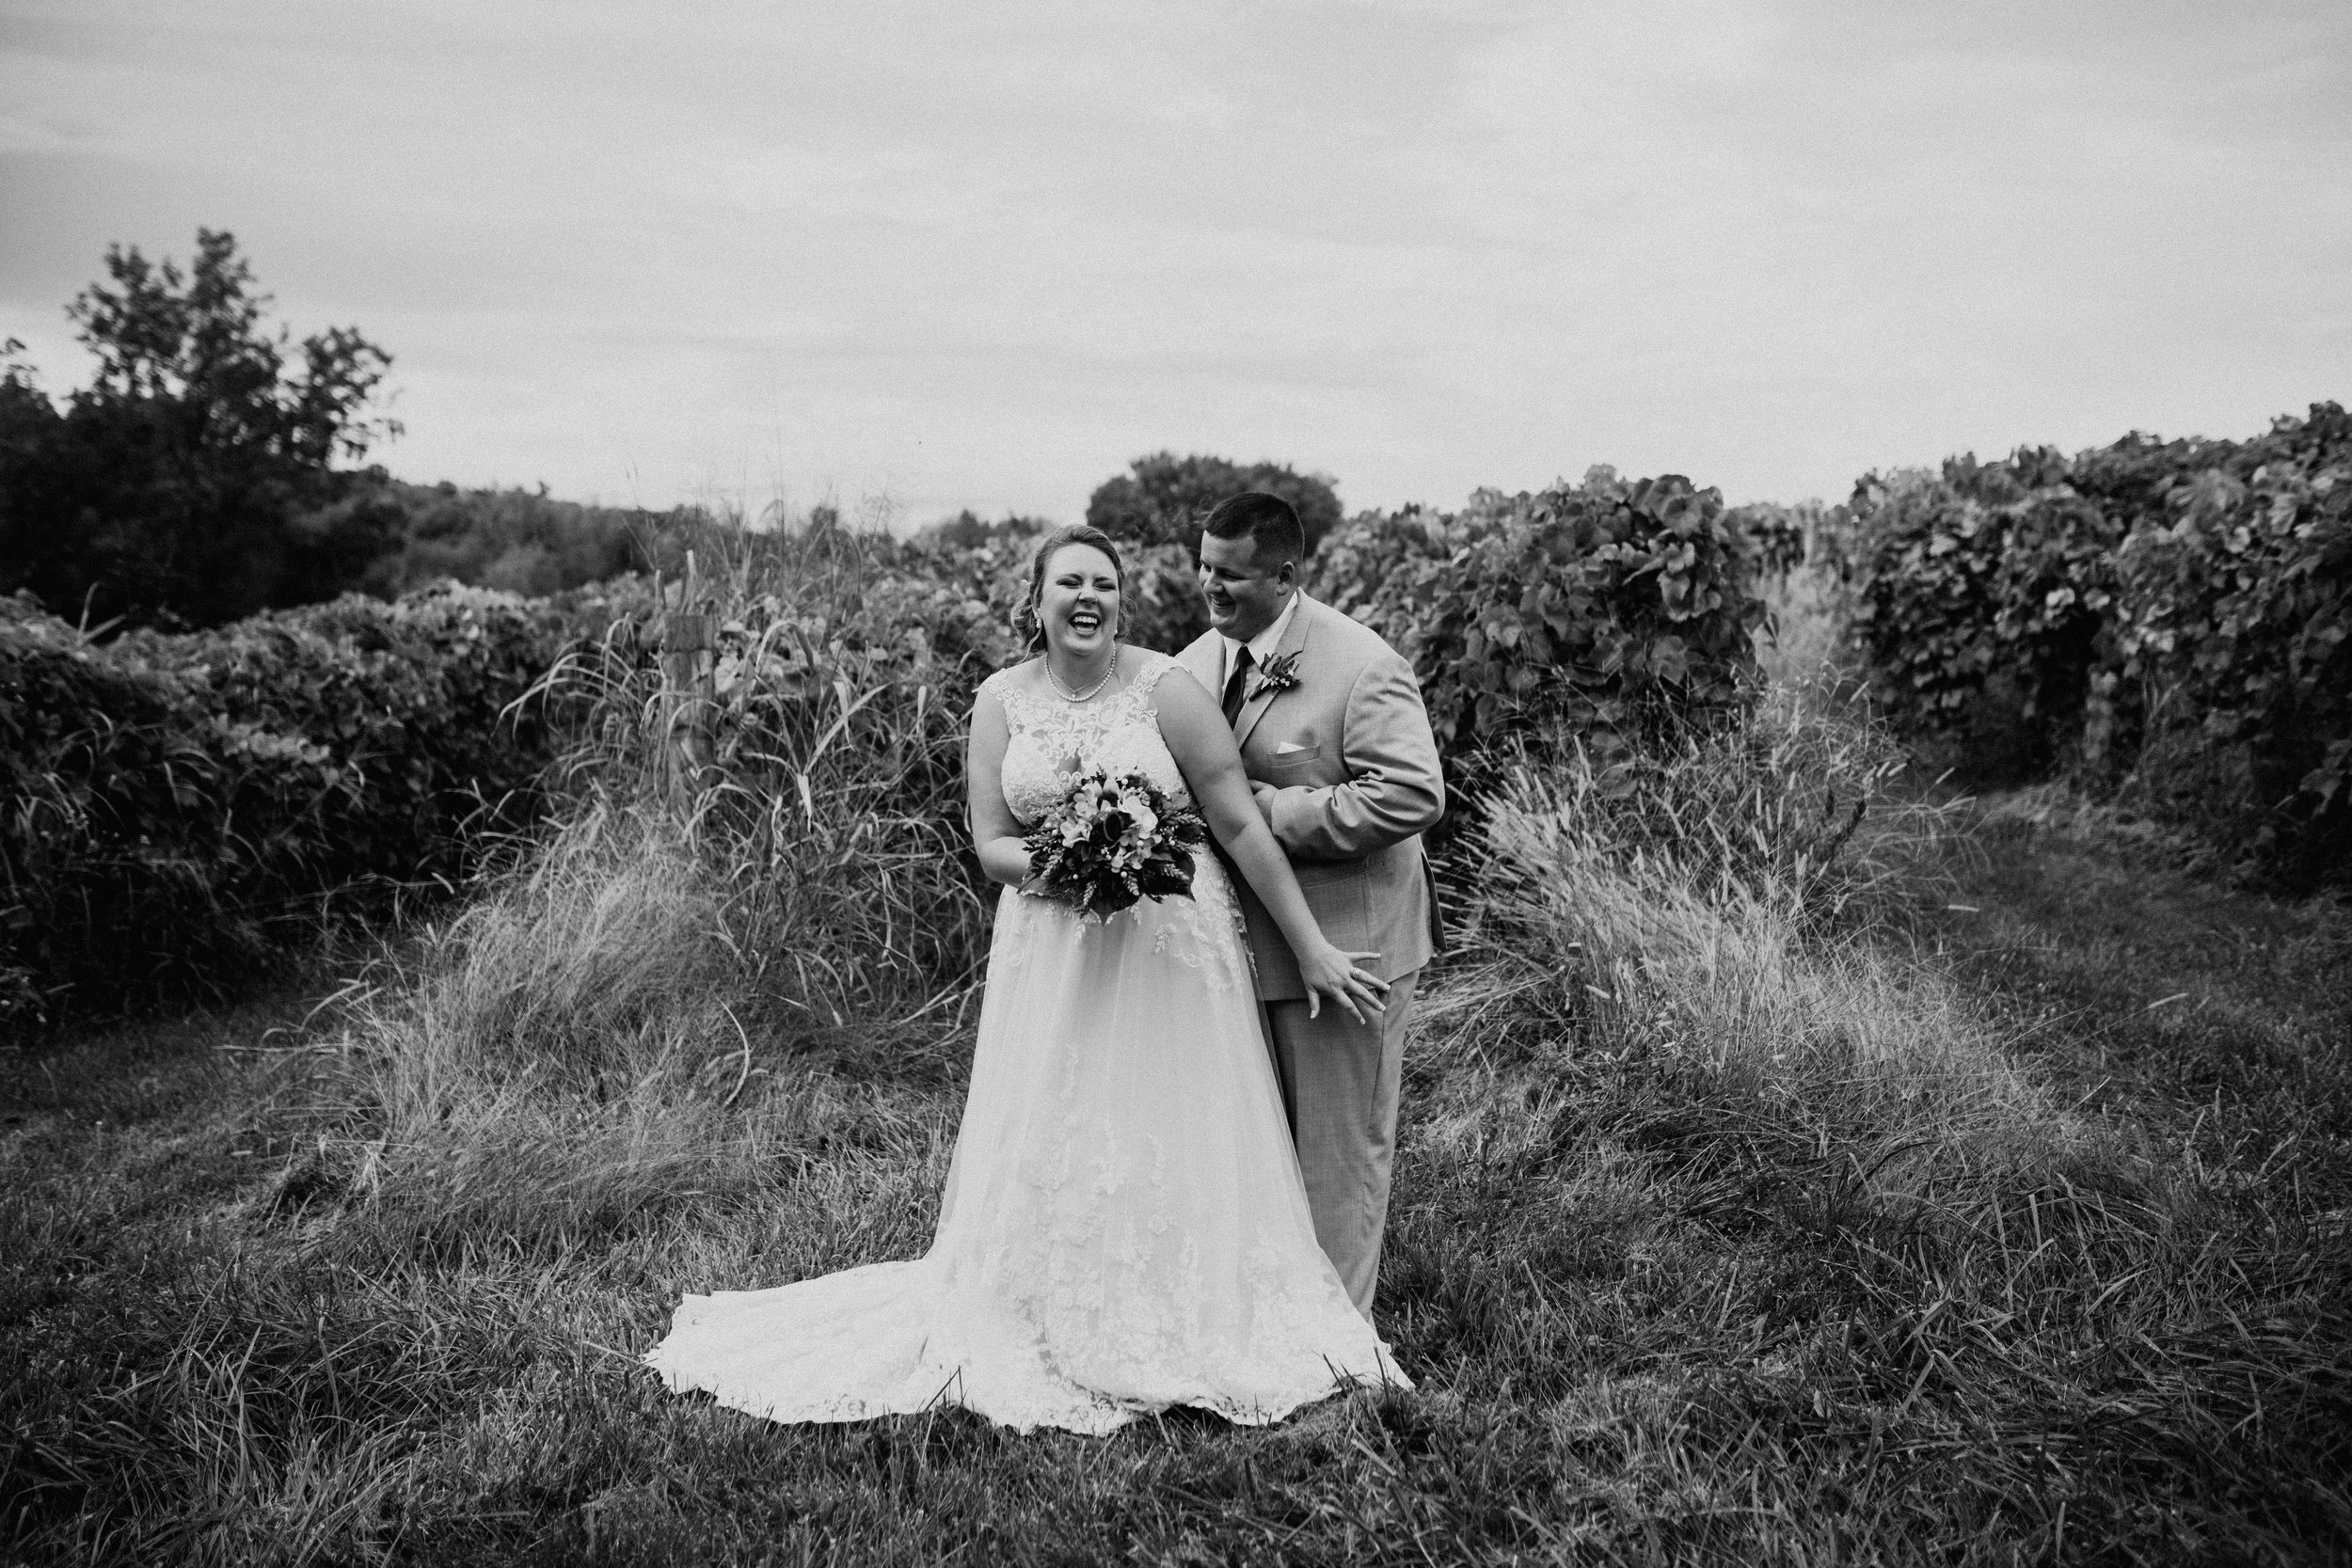 Wedding at Sugar Creek Winery  Maranda and Zac's Wedding Day  Defiance, Missouri  Phoenix Wedding Photographer436.jpg